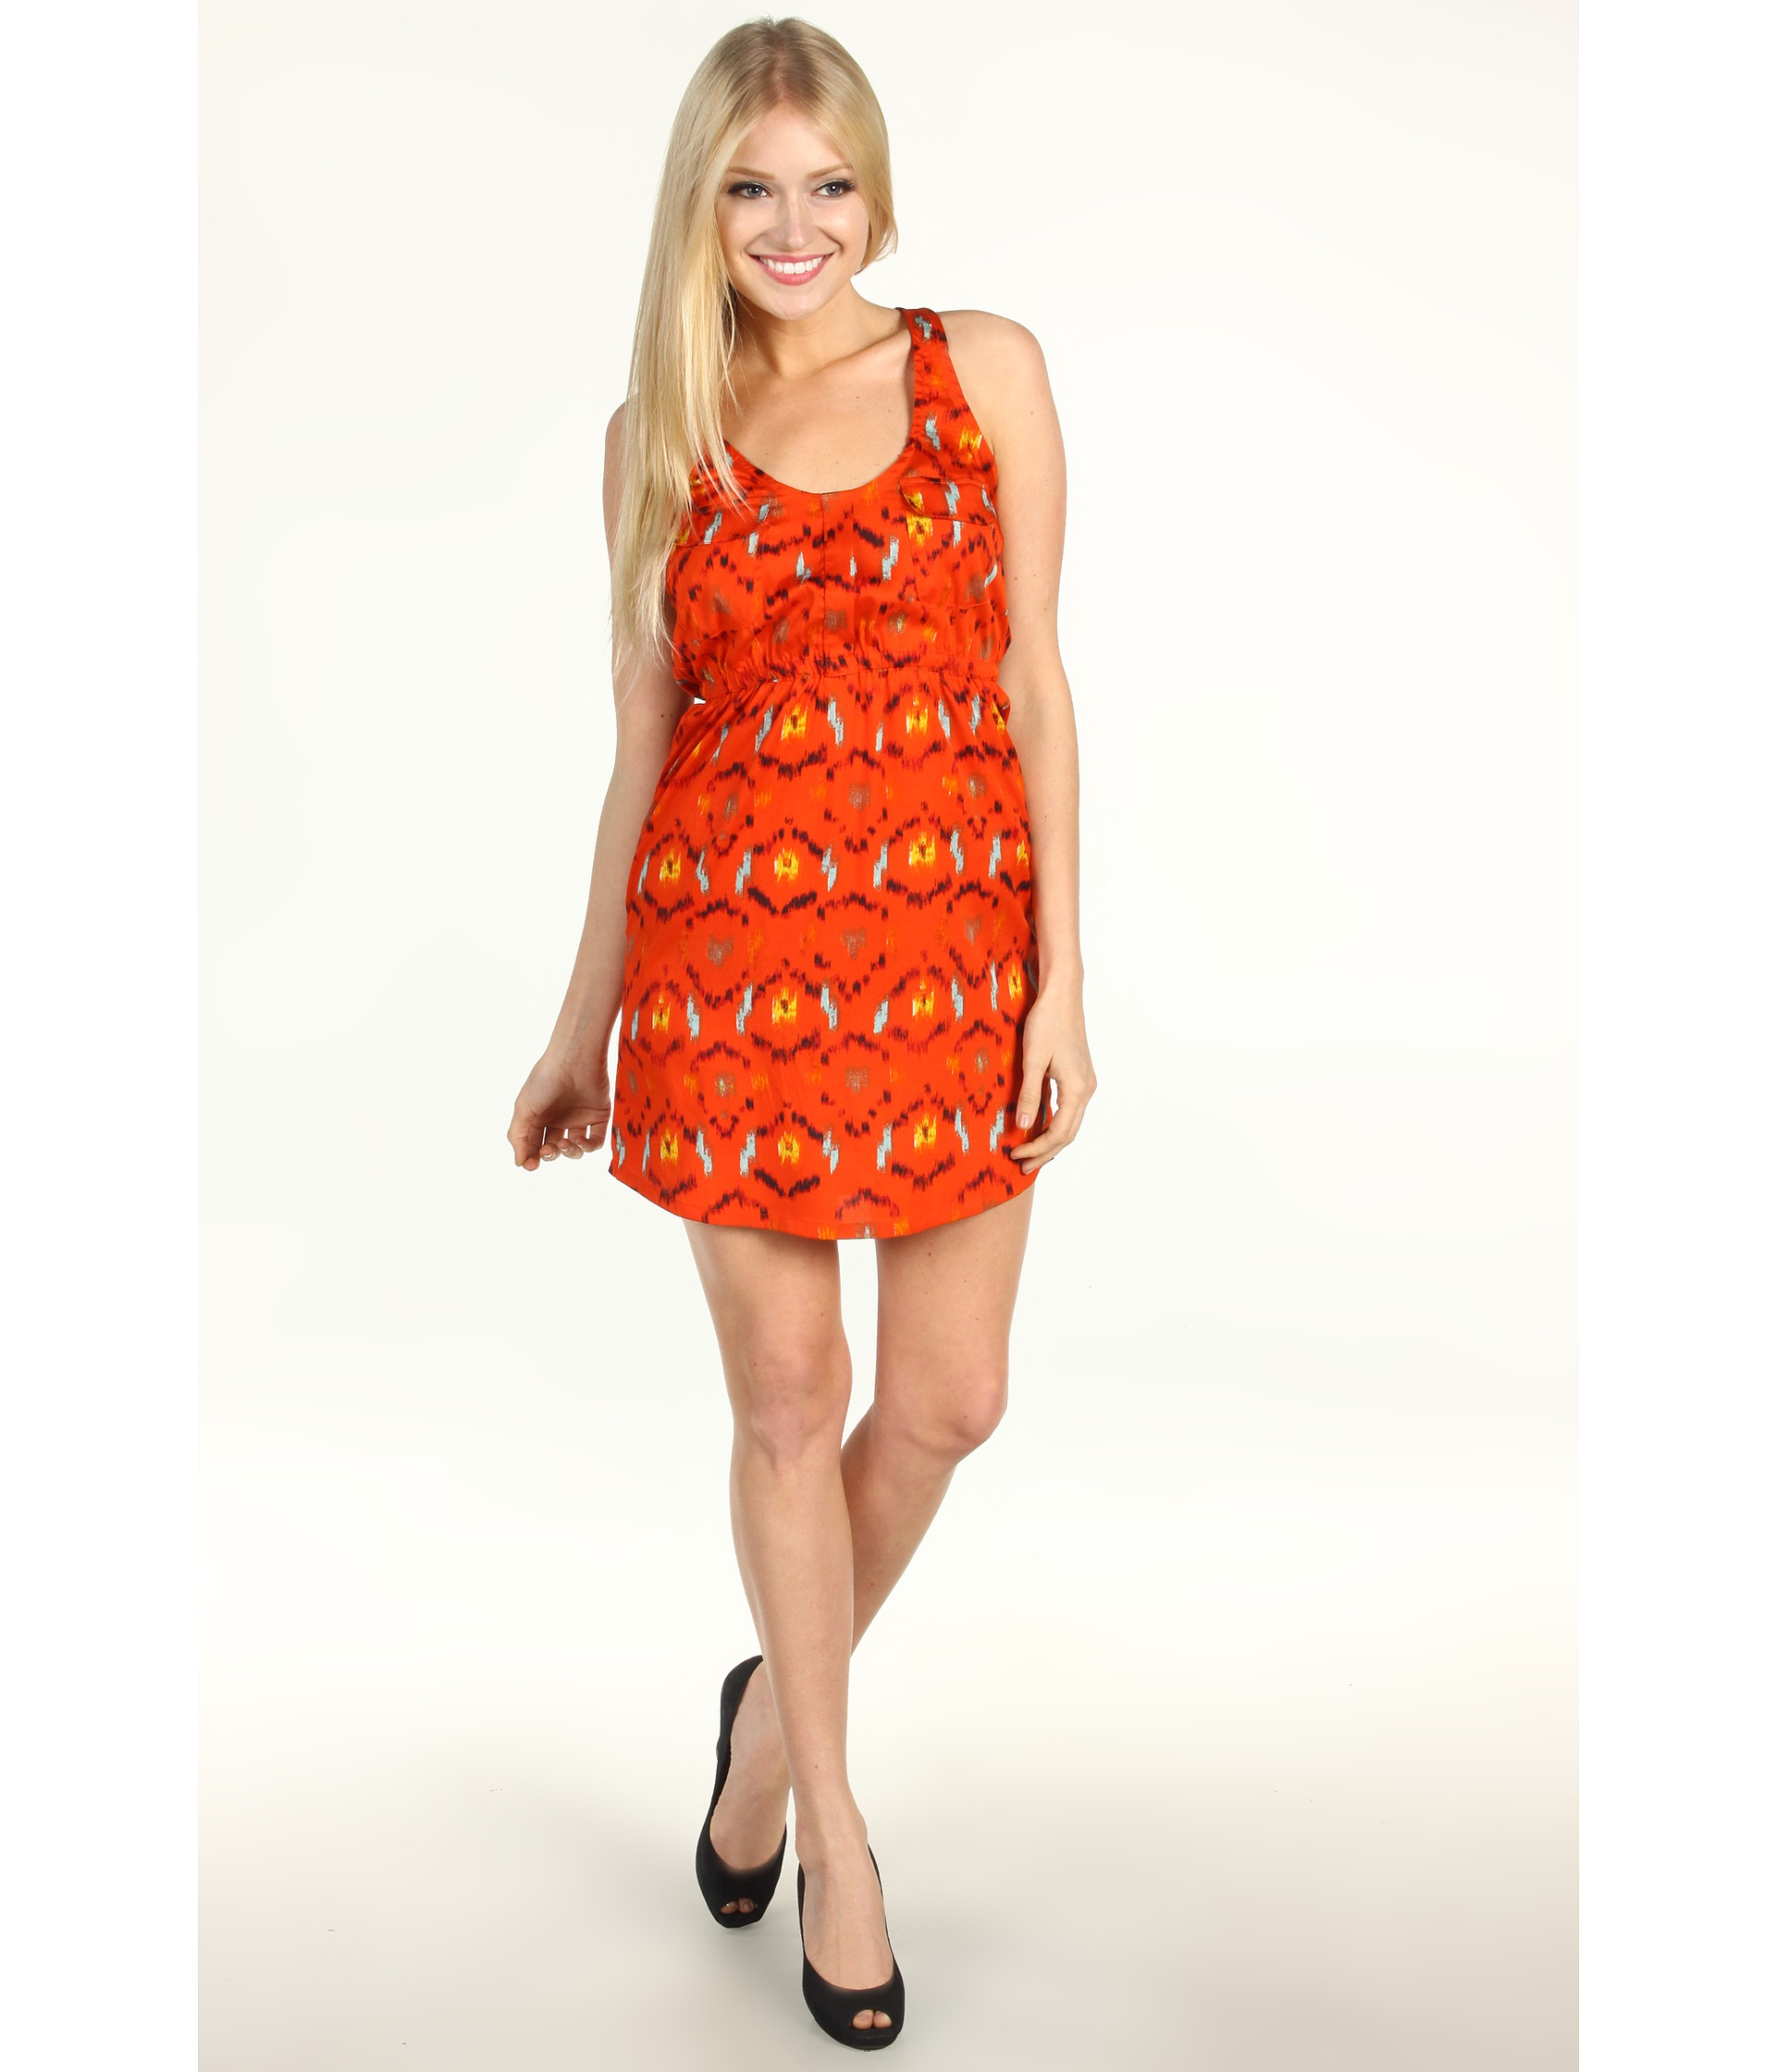 Where to buy cute dresses for juniors